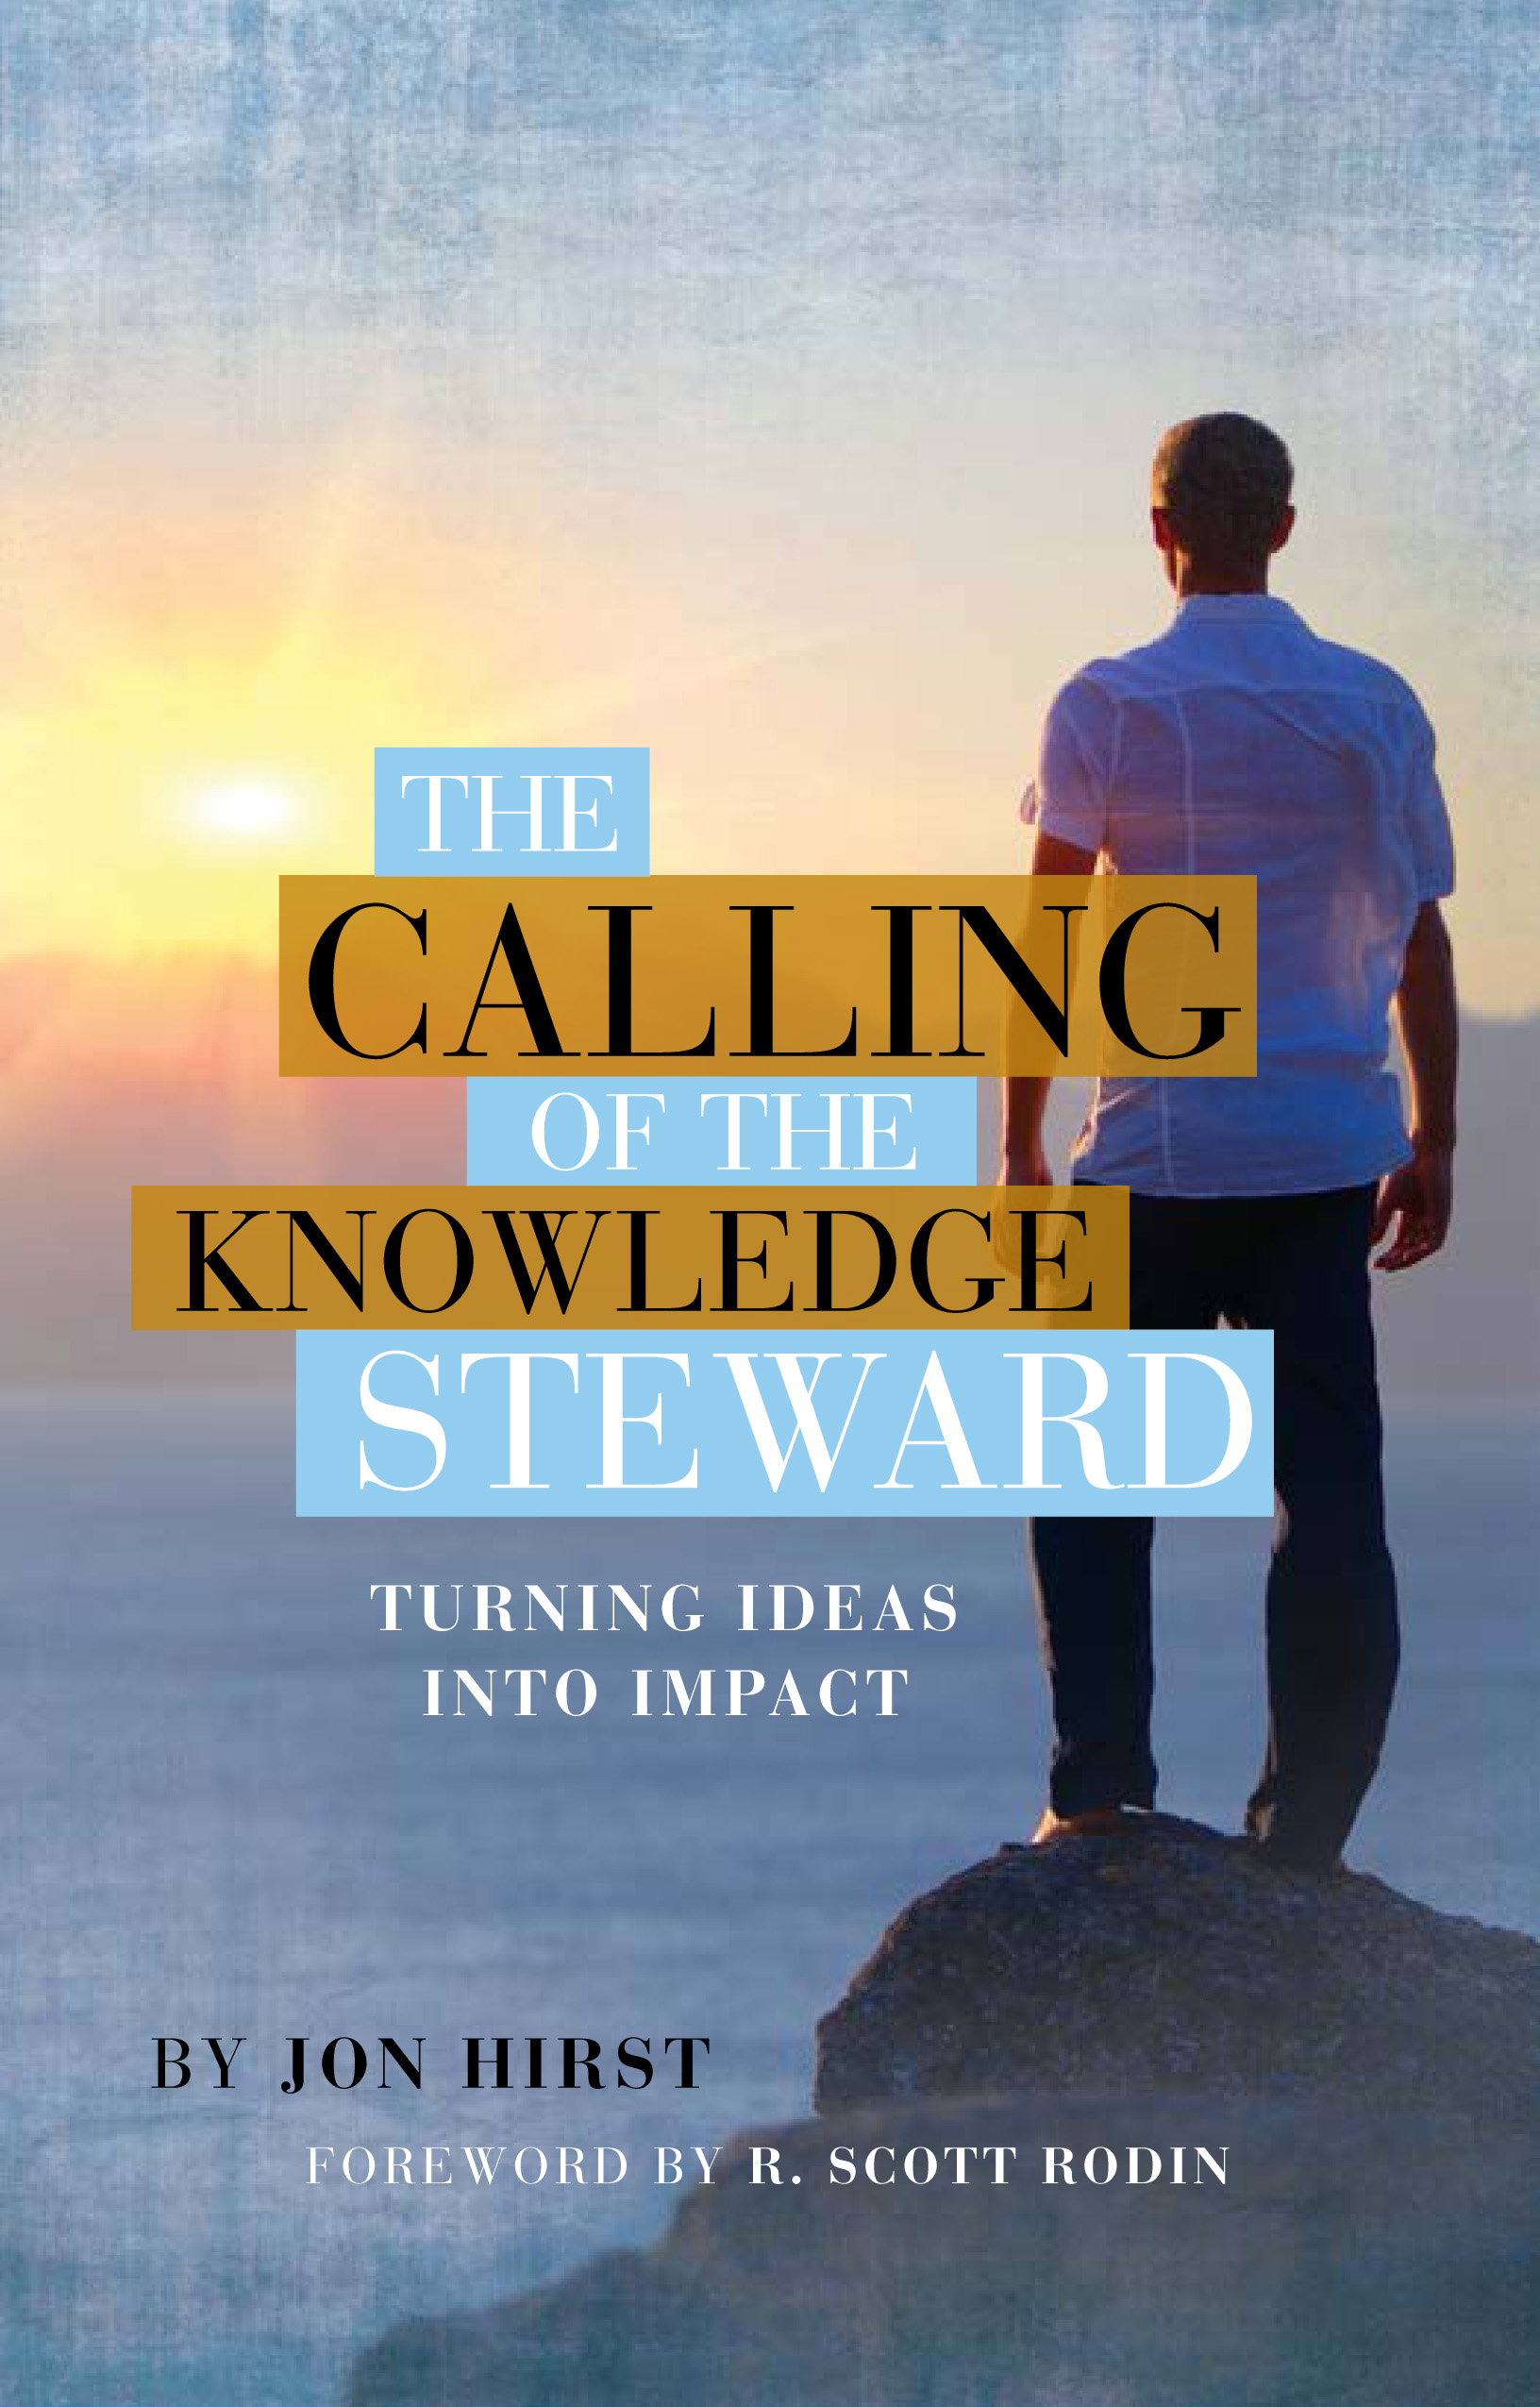 The Calling of the Knowledge Steward